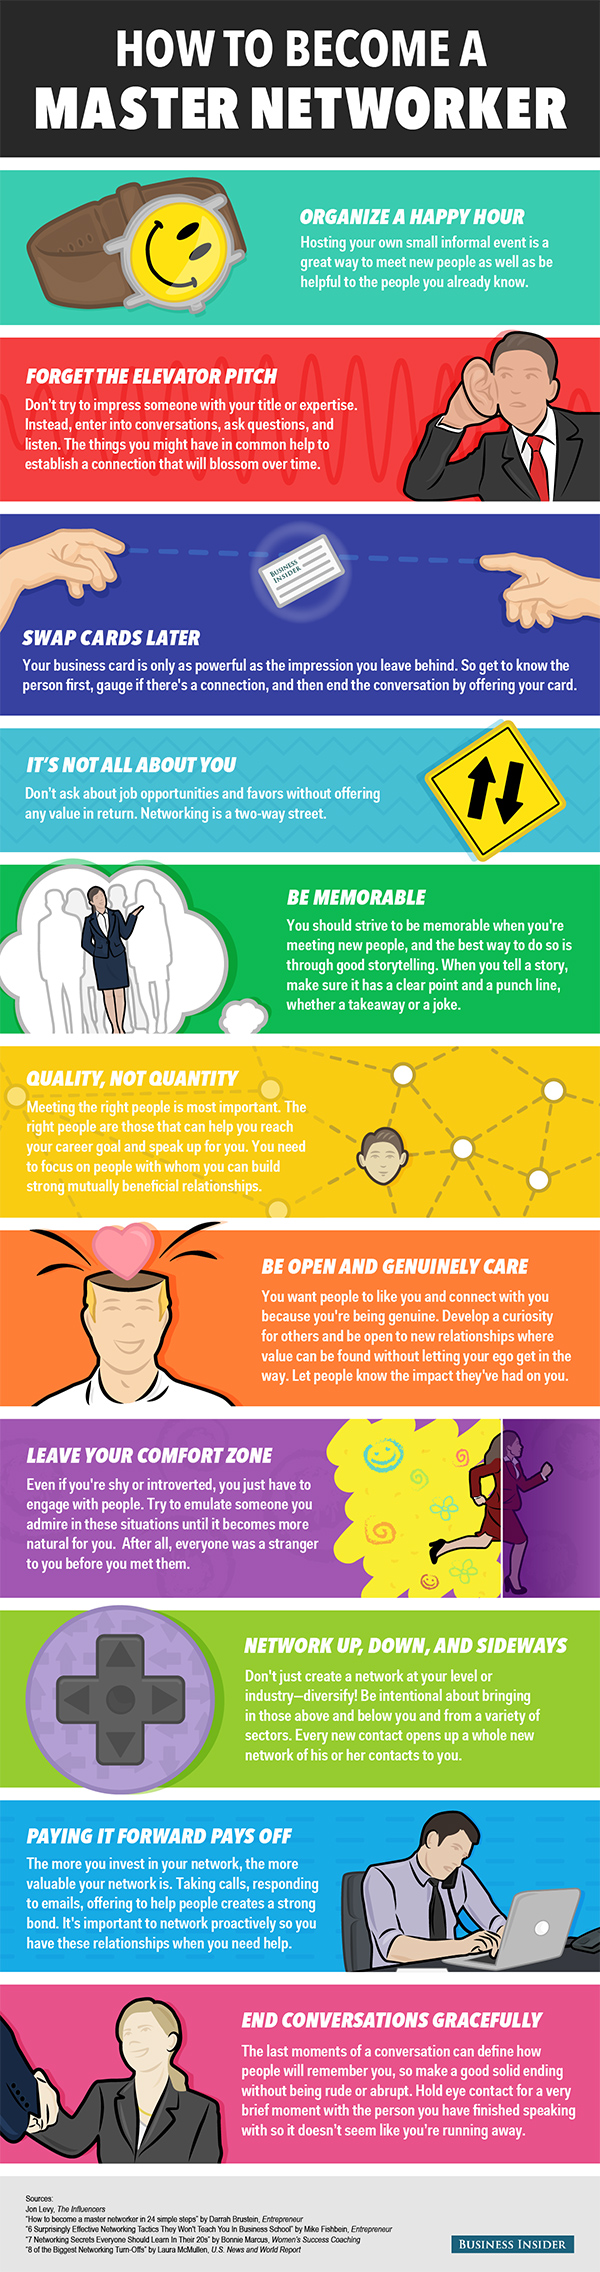 https://www.theedesign.com/cms/wp-content/uploads/2015/05/Networking-Tips-Infographic.jpg